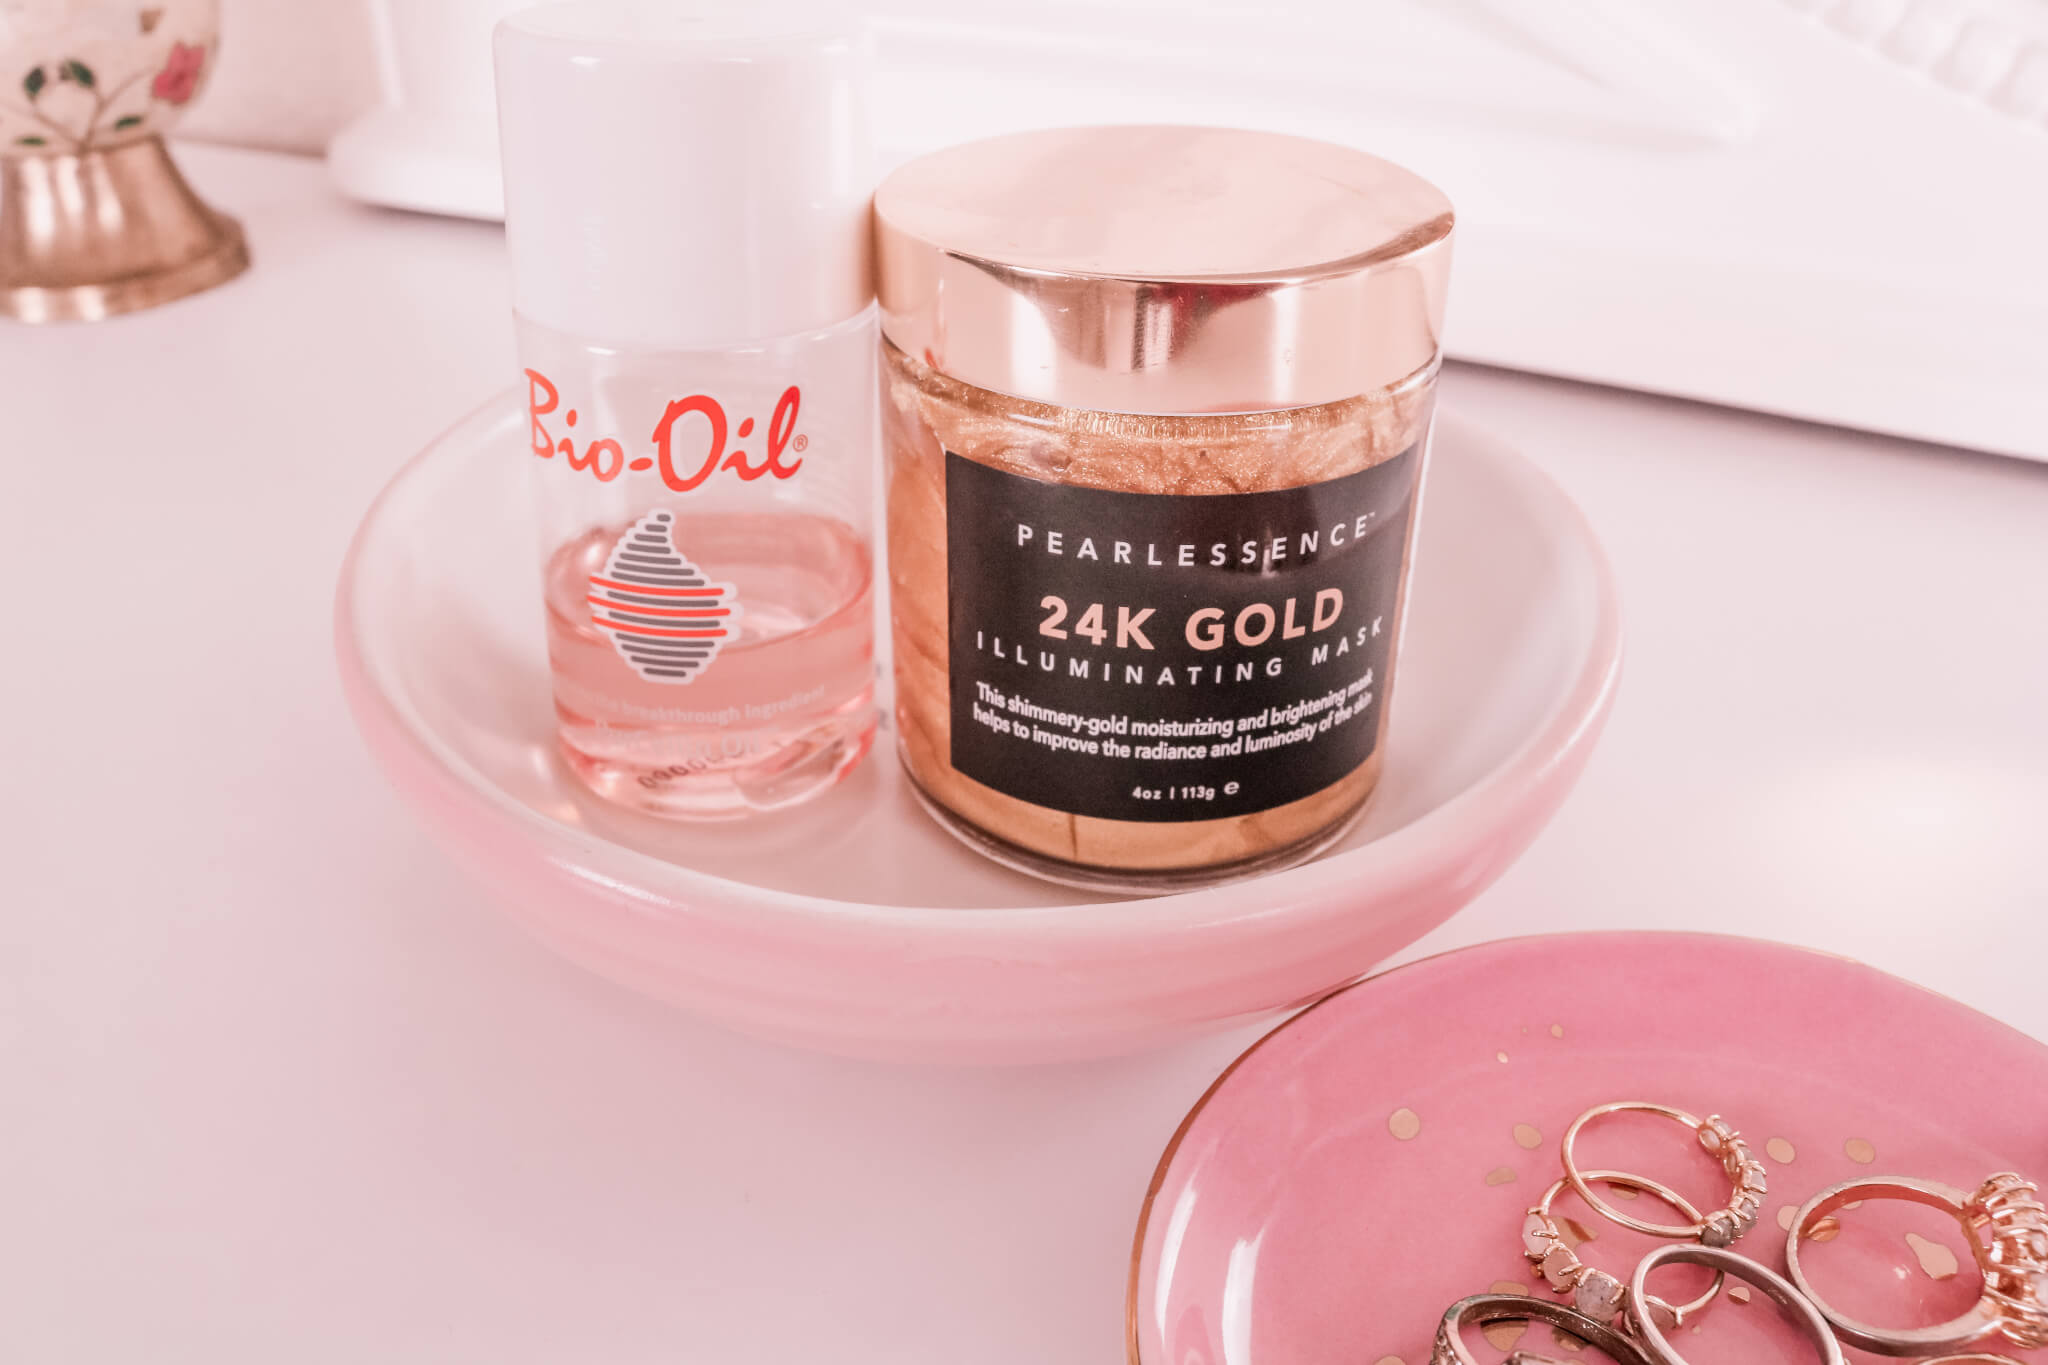 Pearlessence 24K Gold Illuminating Mask